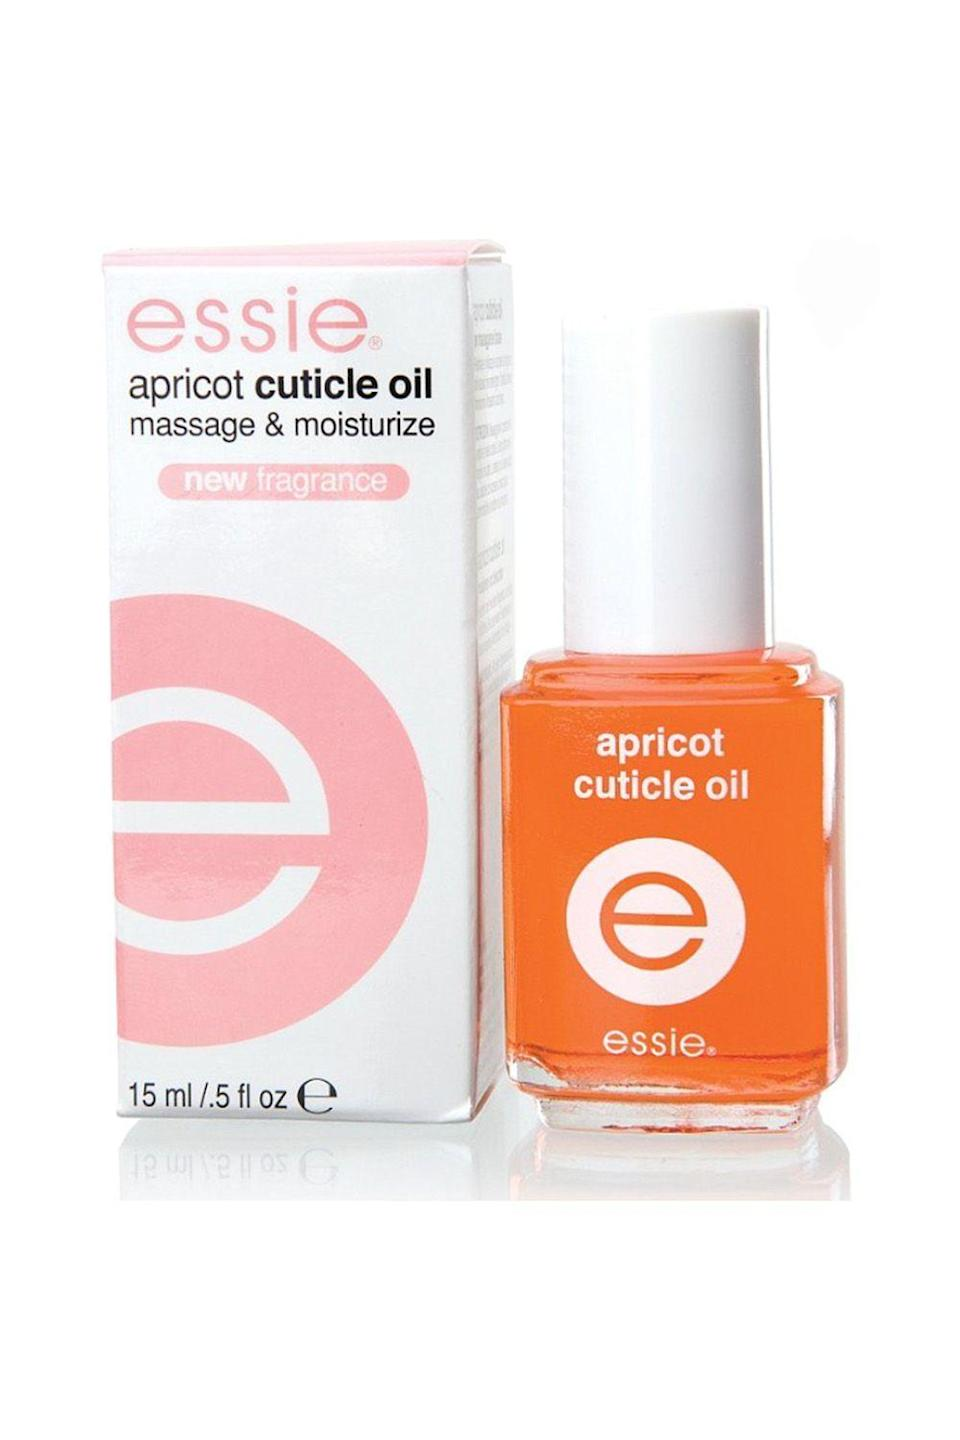 """<p><strong>essie</strong></p><p>ulta.com</p><p><strong>$9.00</strong></p><p><a href=""""https://go.redirectingat.com?id=74968X1596630&url=https%3A%2F%2Fwww.ulta.com%2Fapricot-cuticle-oil%3FproductId%3DxlsImpprod1320184&sref=https%3A%2F%2Fwww.oprahmag.com%2Fbeauty%2Fskin-makeup%2Fg33013870%2Fbest-cuticle-oils%2F"""" rel=""""nofollow noopener"""" target=""""_blank"""" data-ylk=""""slk:SHOP NOW"""" class=""""link rapid-noclick-resp"""">SHOP NOW</a></p><p>You'll instantly feel happier from this cuticle oil's sweet fruity scent—and your mood isn't the only thing getting a lift. As the name suggests, this formula gives top billing to skin-softening apricot oil, which is rich in fatty acids and antioxidants, but it's also chock full of other nourishing ingredients, including almond, jojoba, and sunflower seed oils. </p>"""